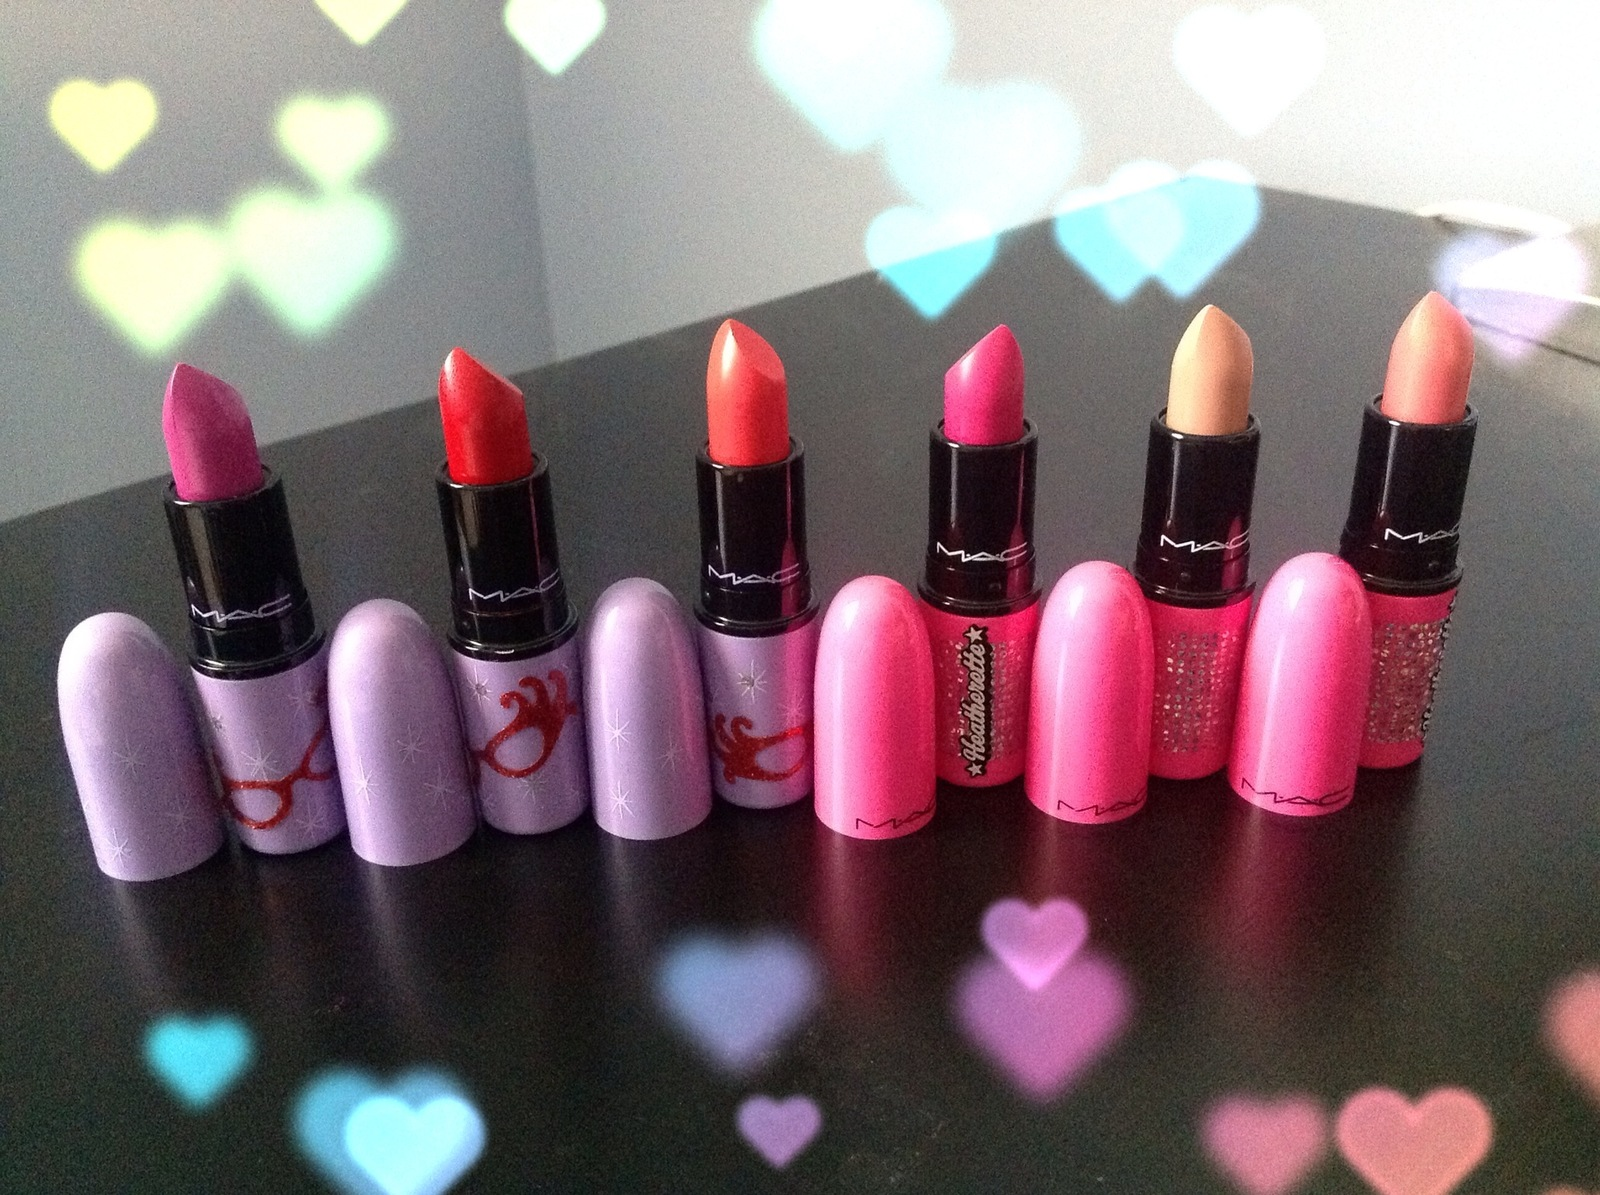 My MAC Limited Edition Lipstick collection (pic heavy)